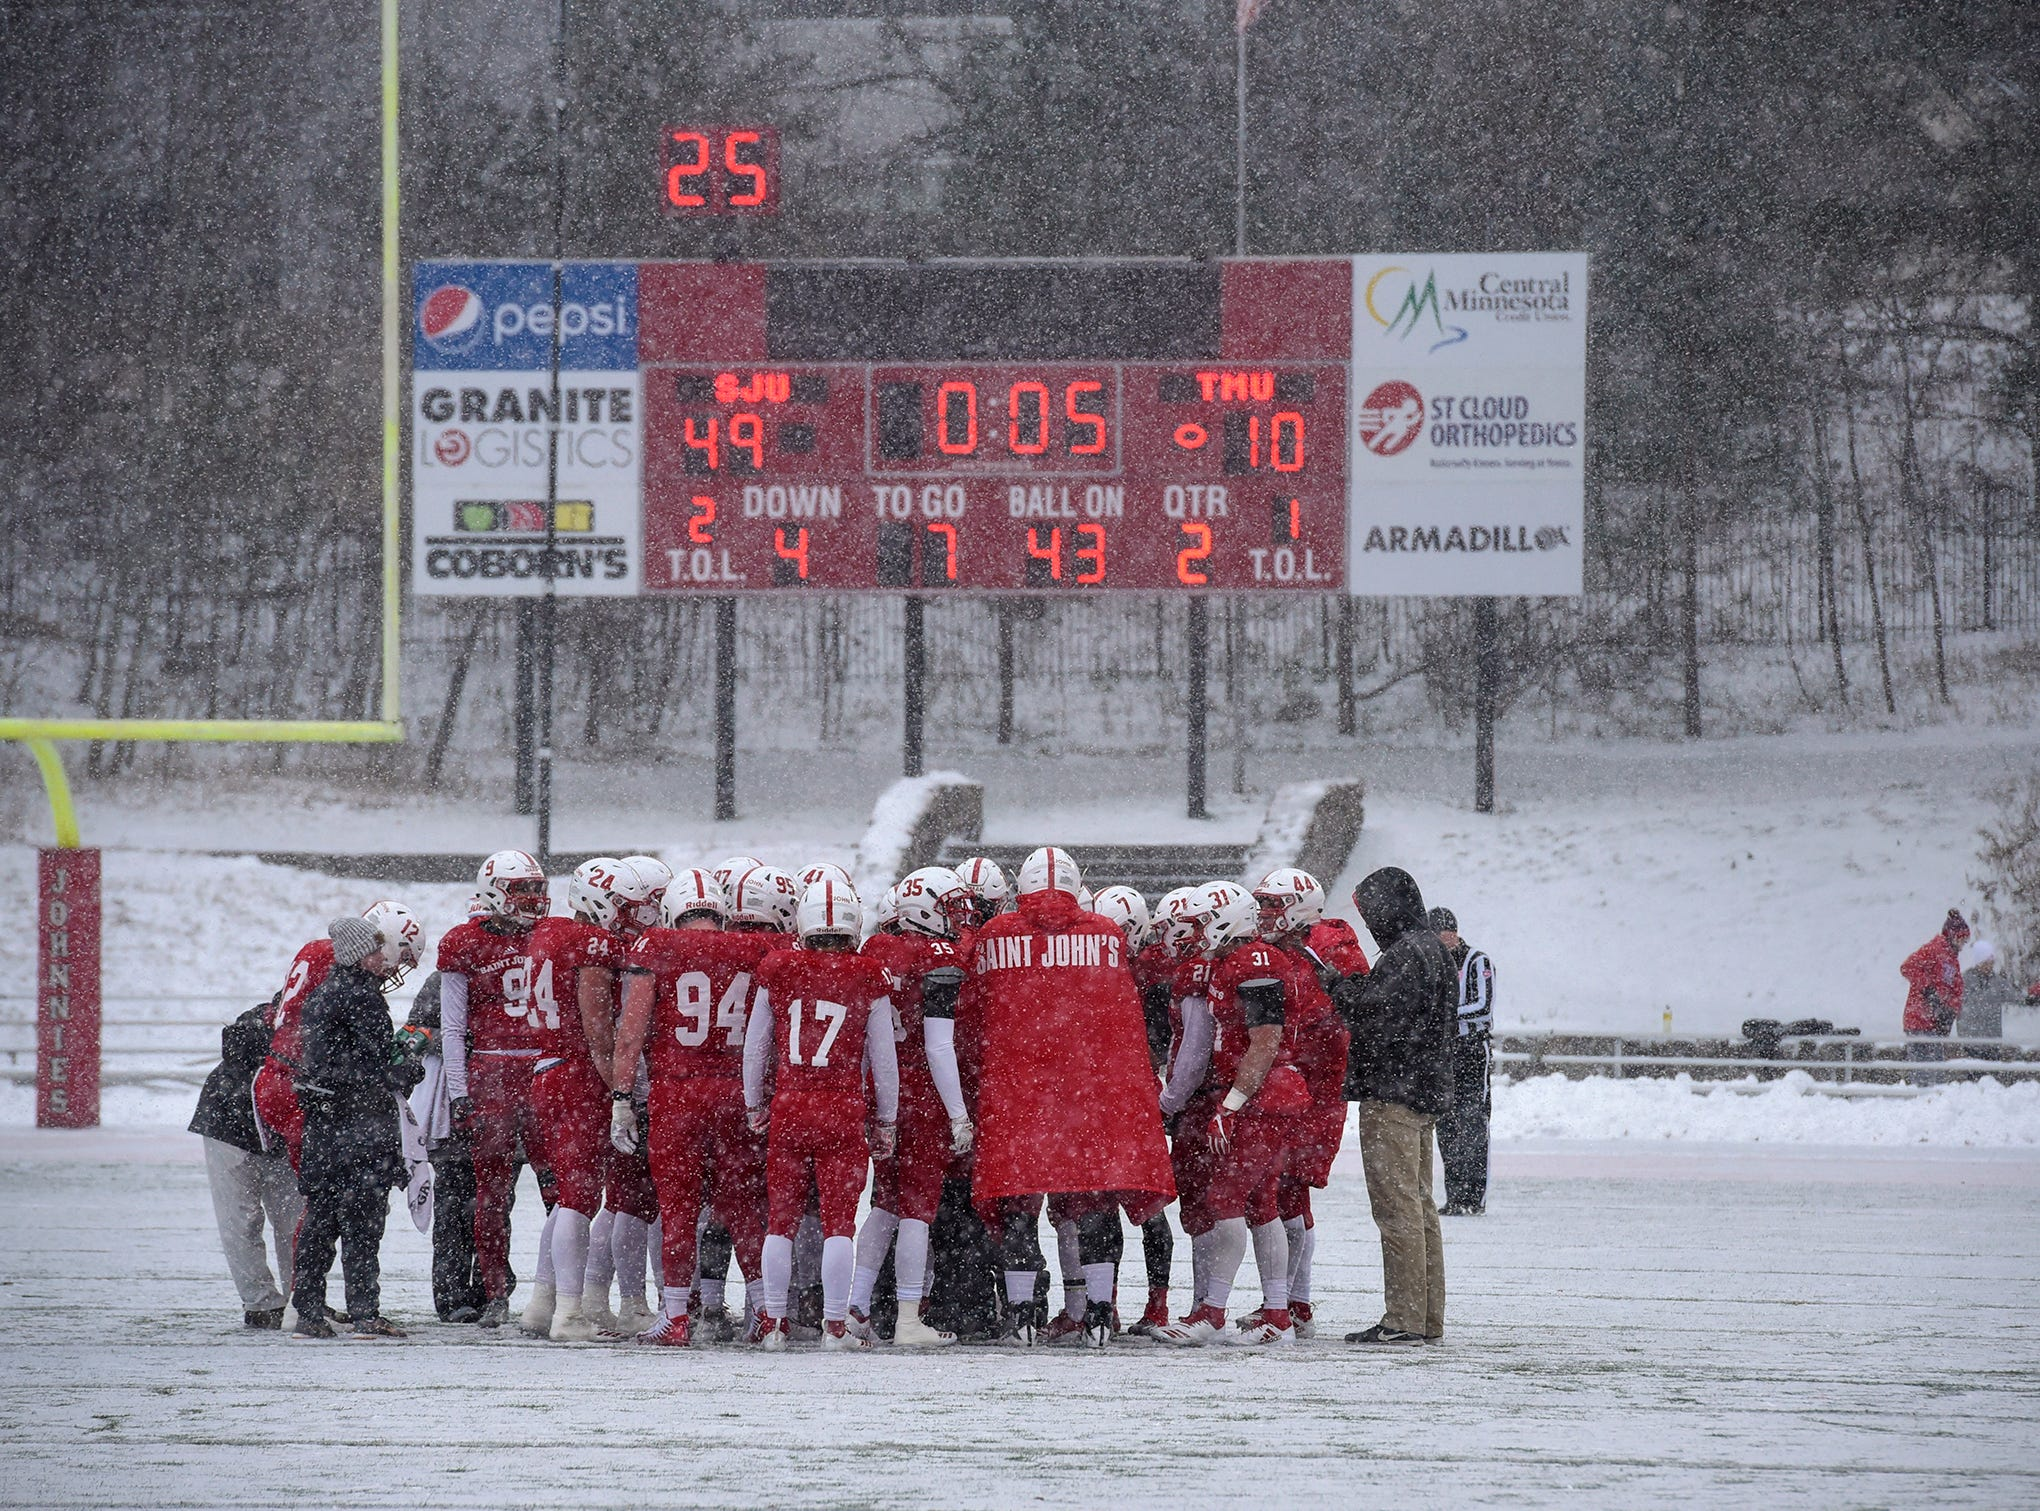 St. John's players gather during a timeout under heavy snowfall during the first half of the Saturday, Nov. 10, game against Thomas More University at Clemens Stadium in Collegeville.